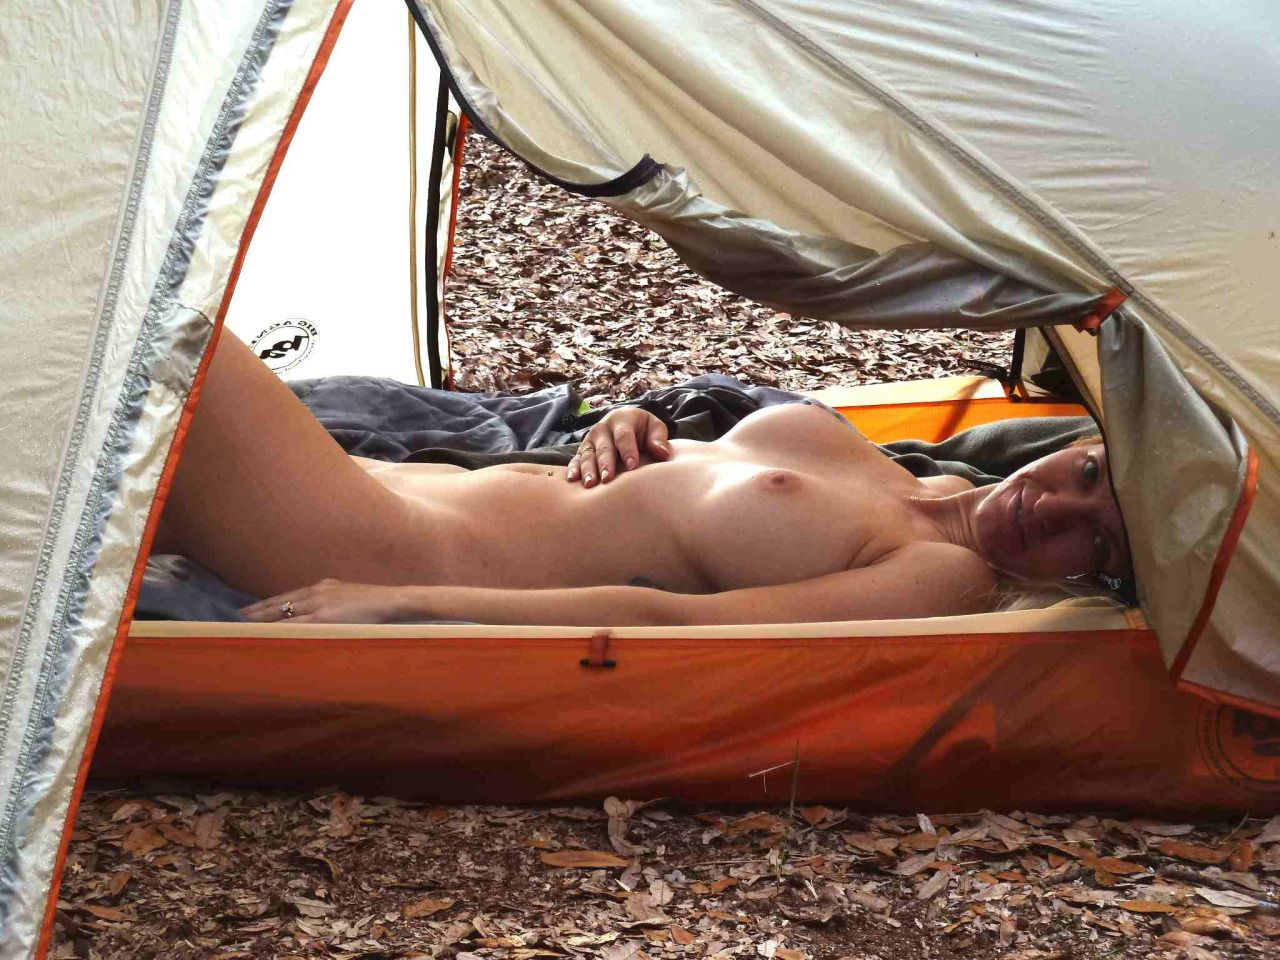 naked-camping-intercourse